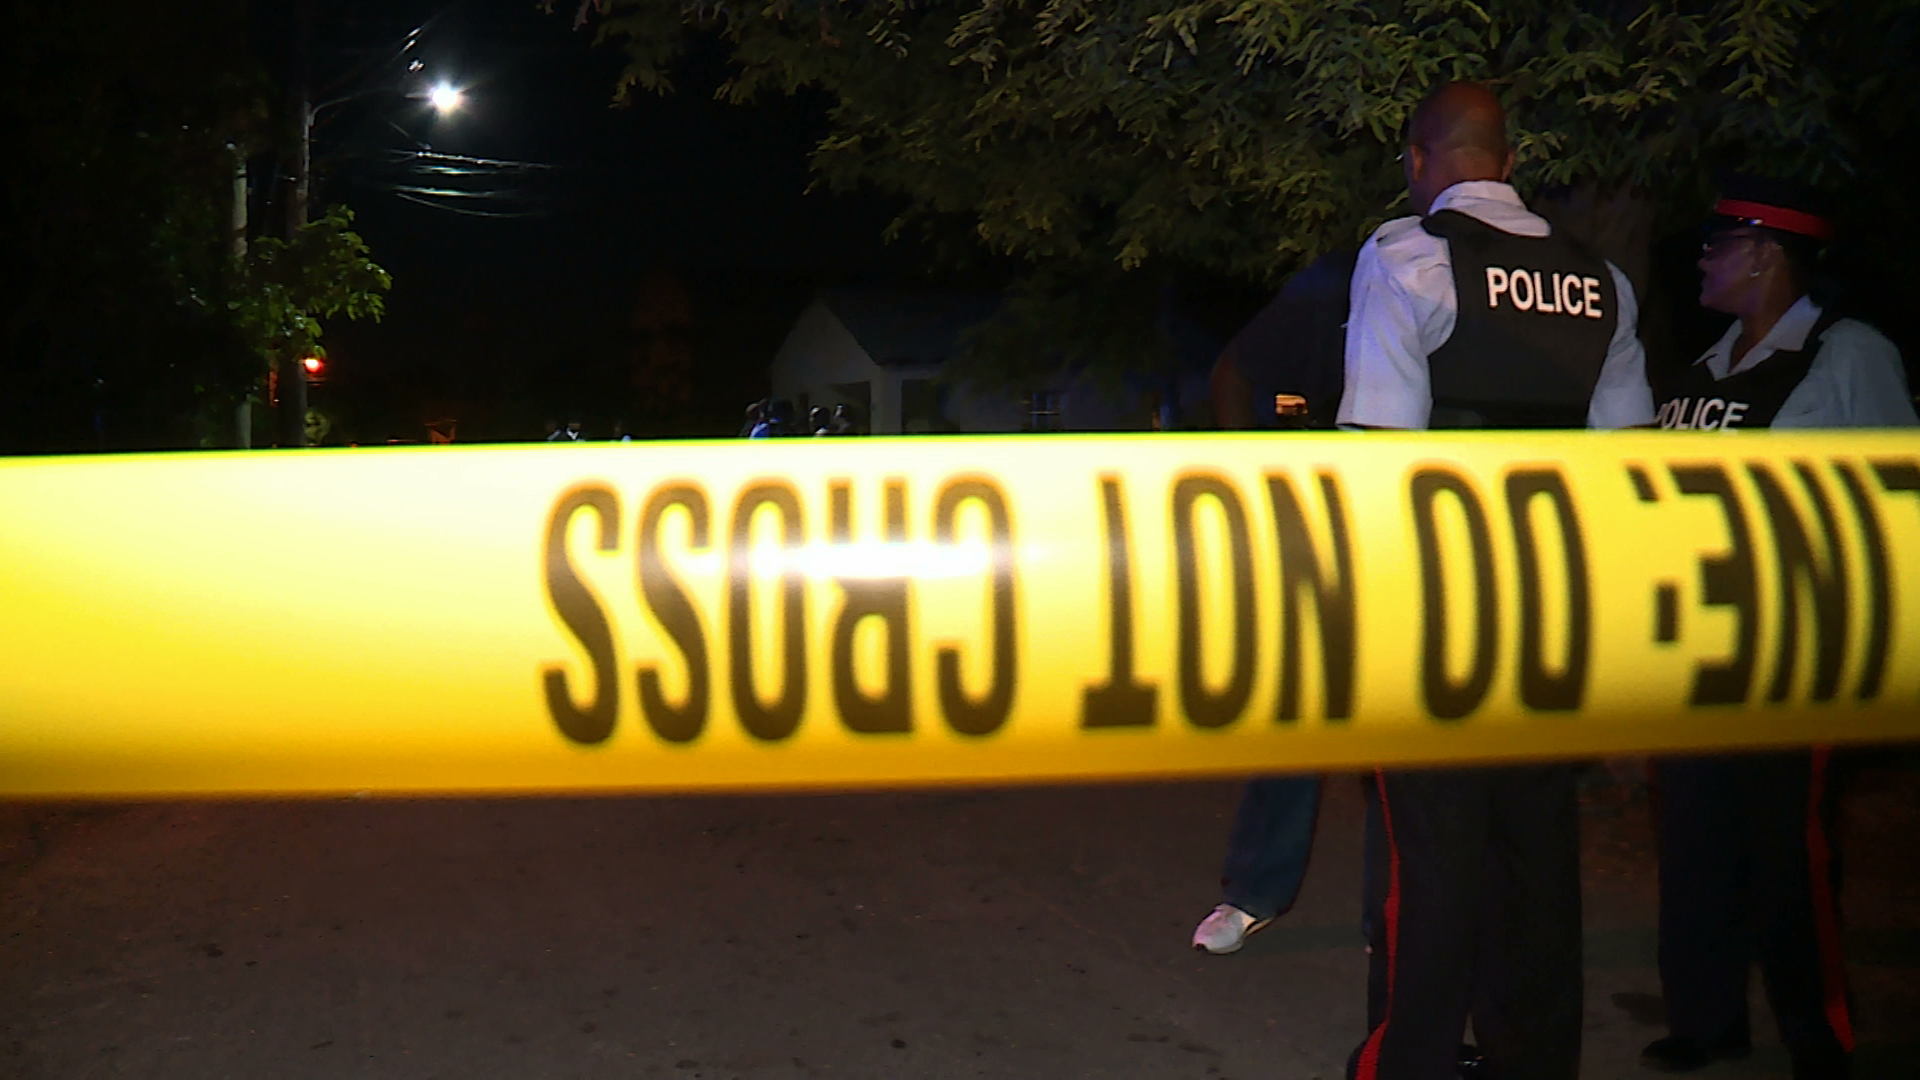 Three men shot on Monday night; one stable, two critical